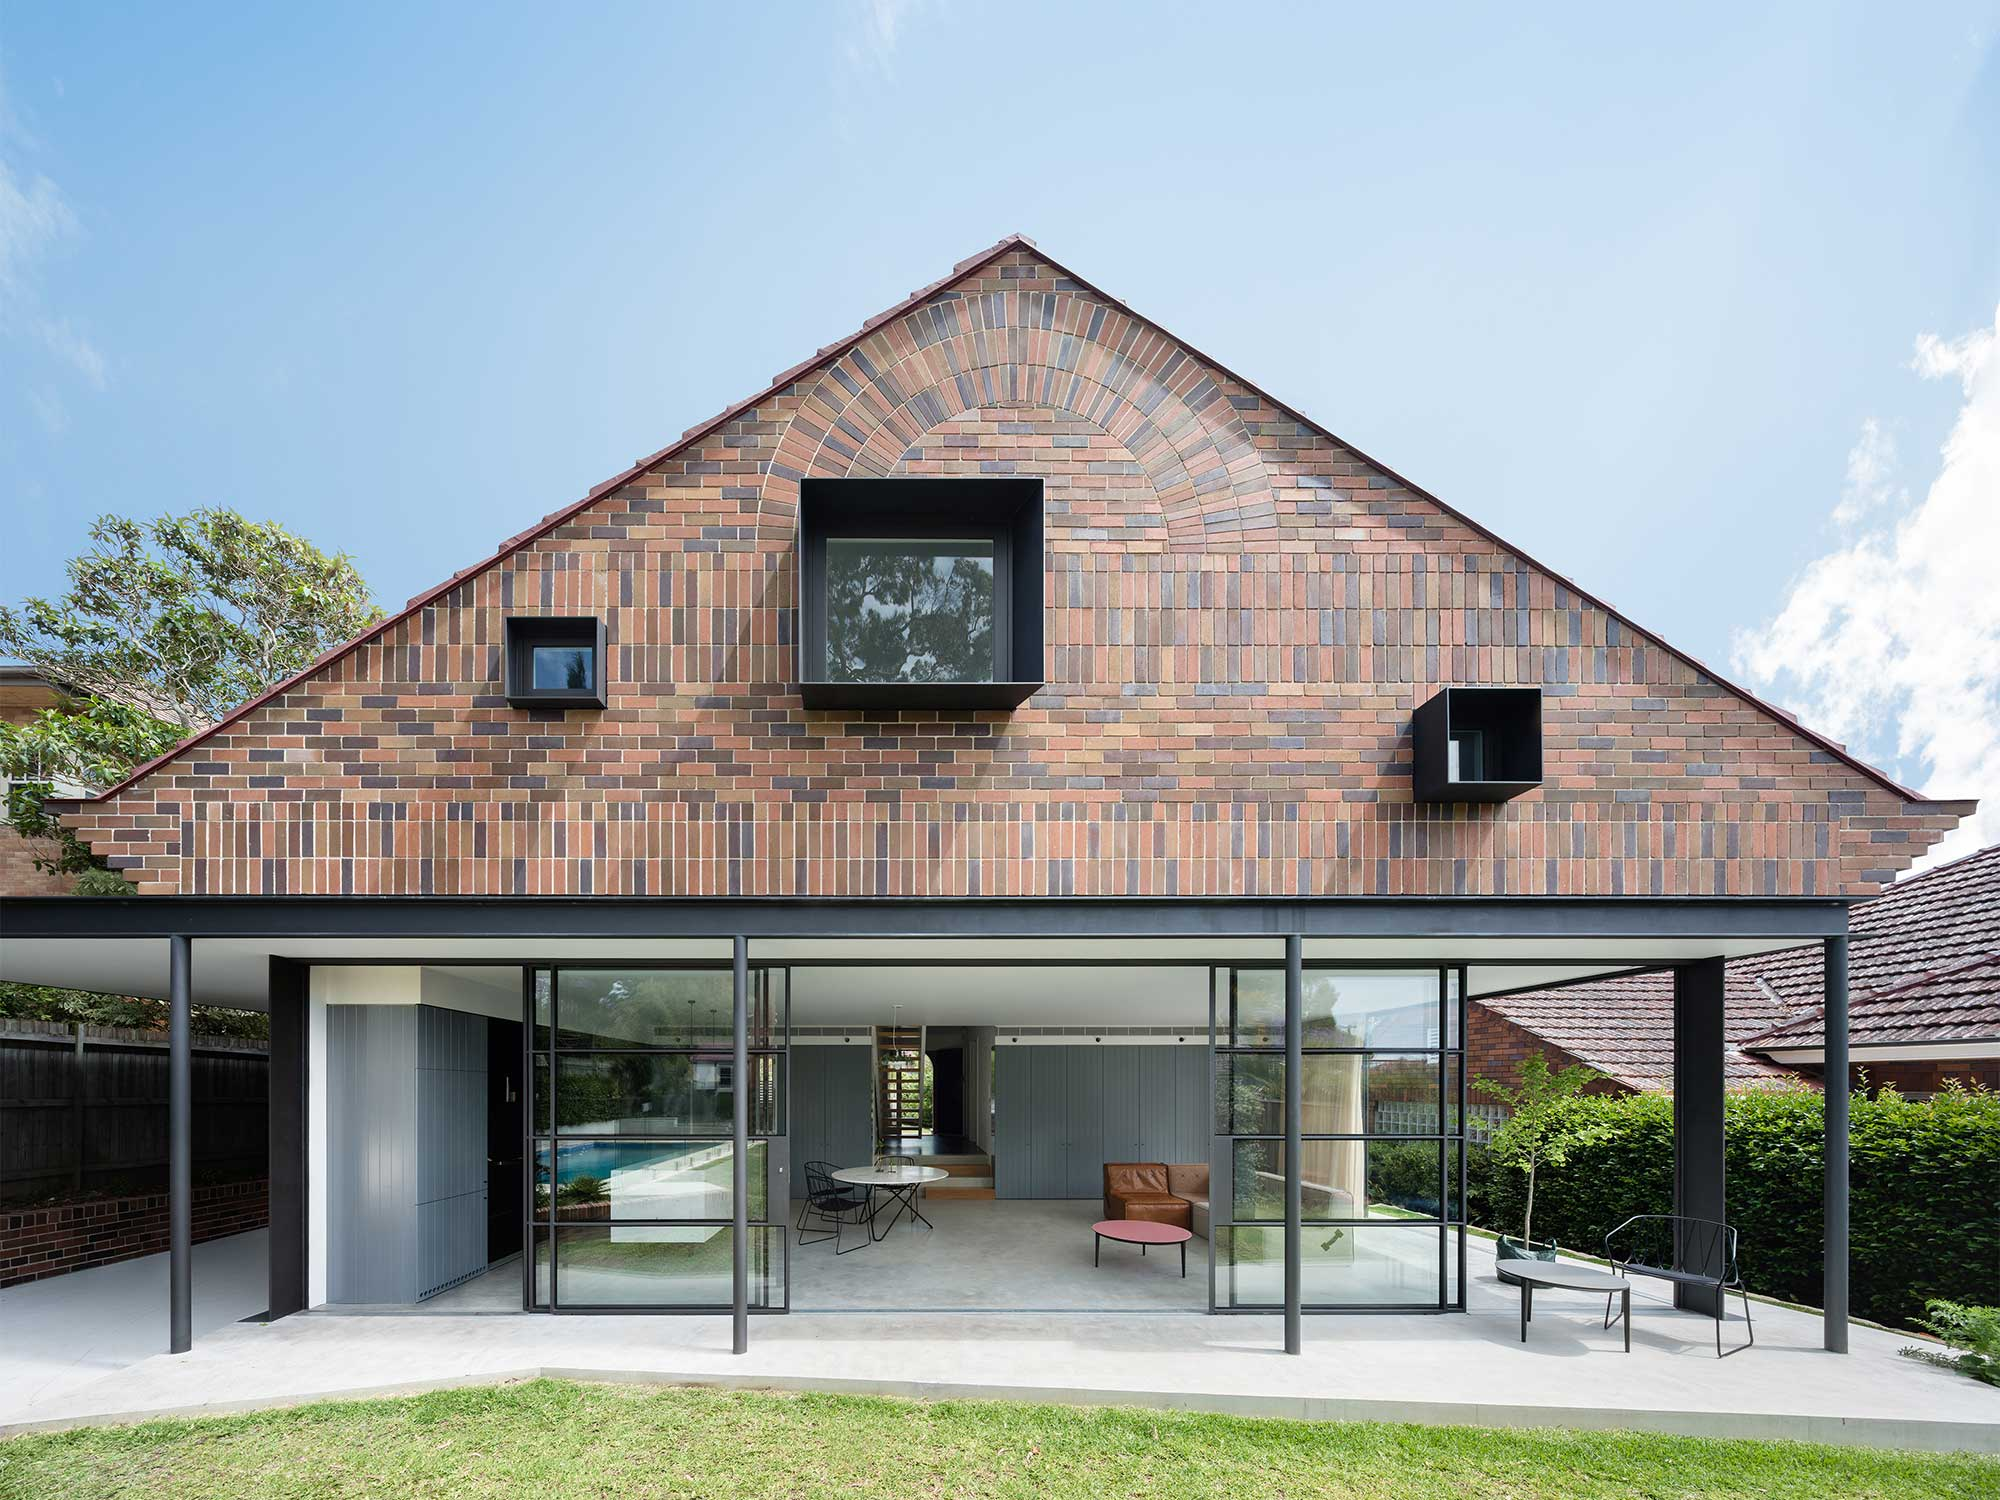 A particularly creative application of brick facade